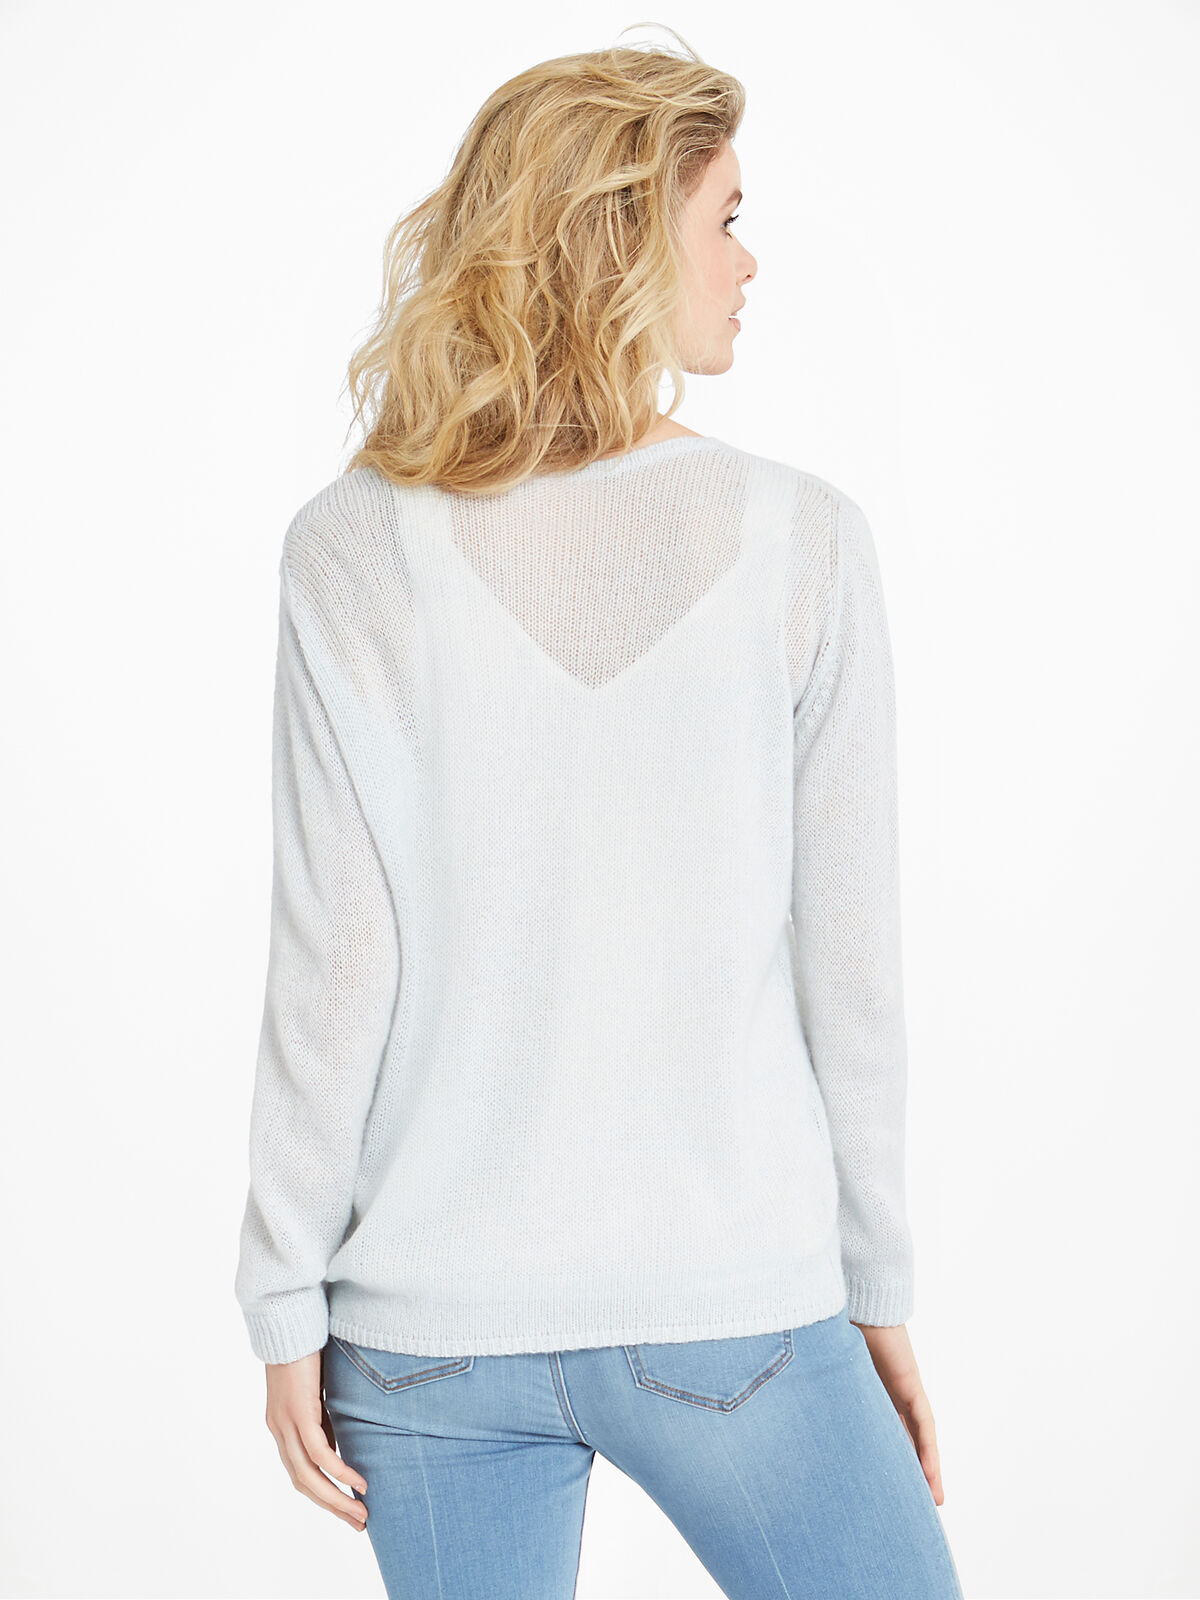 Keep It Light Sweater